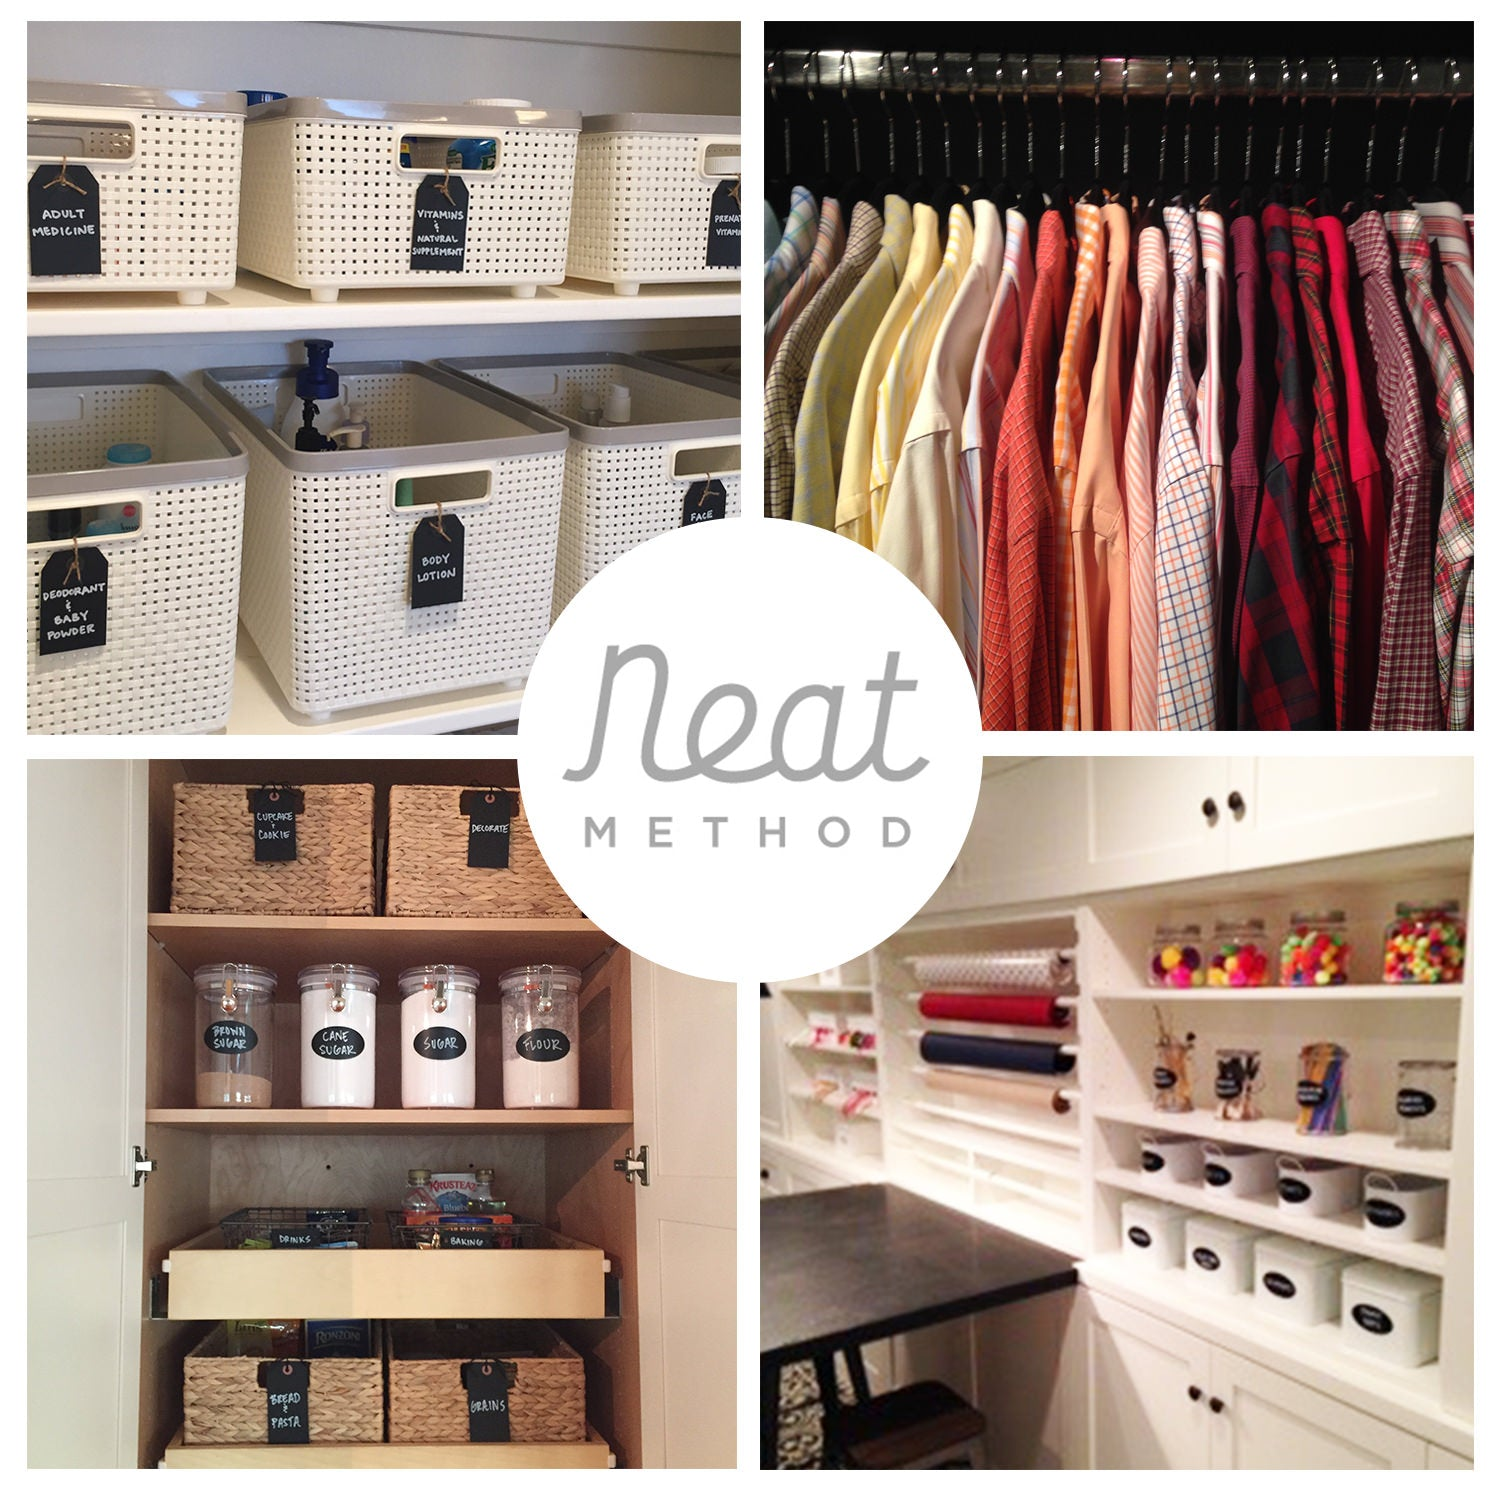 Organized pantry, organized linen closet, organized closet, organized craft room, NEAT Method